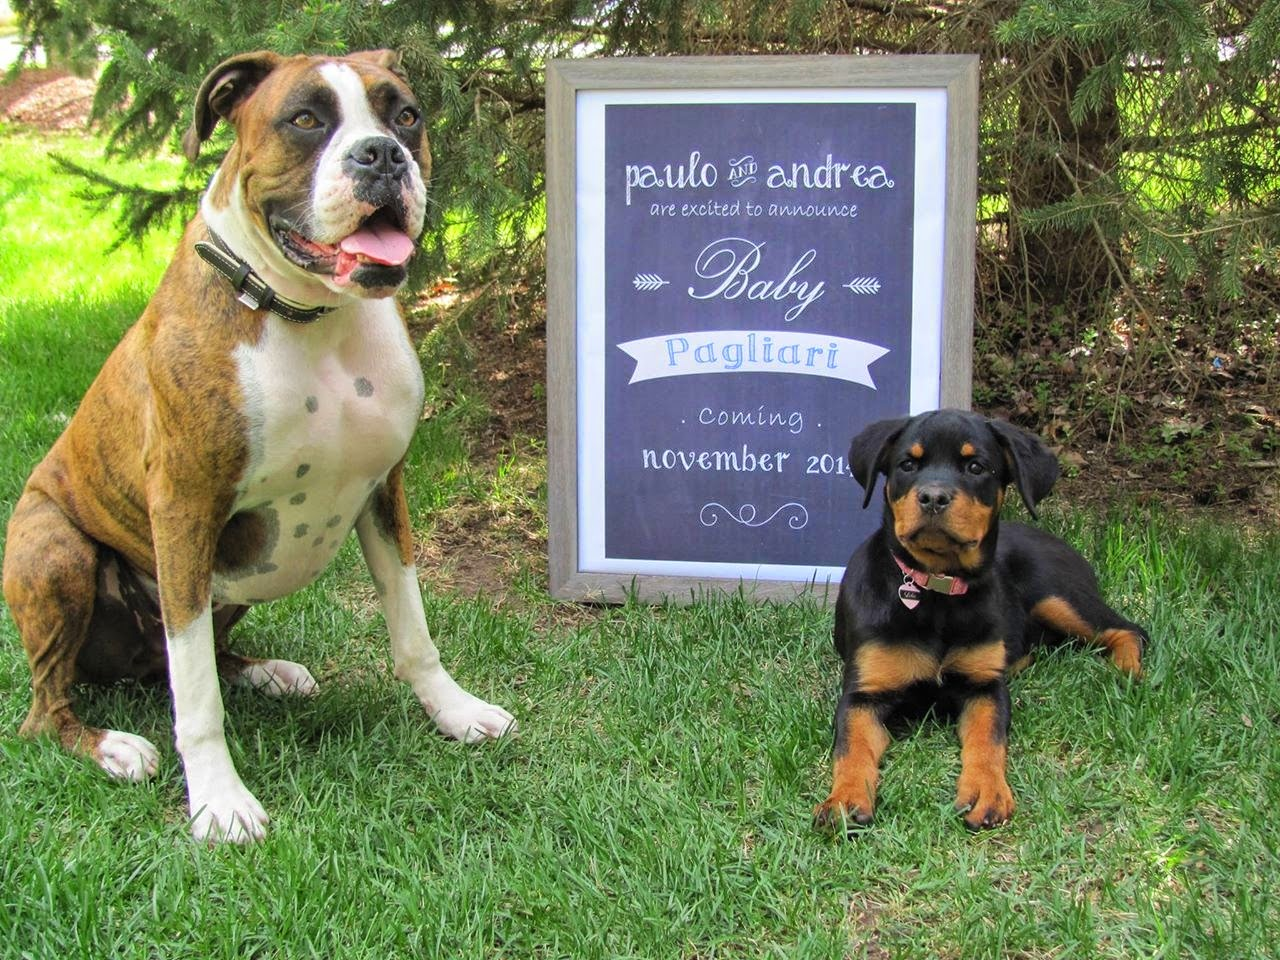 I Heart Pears Pregnancy Announcement Ideas – Birth Announcement with Dog